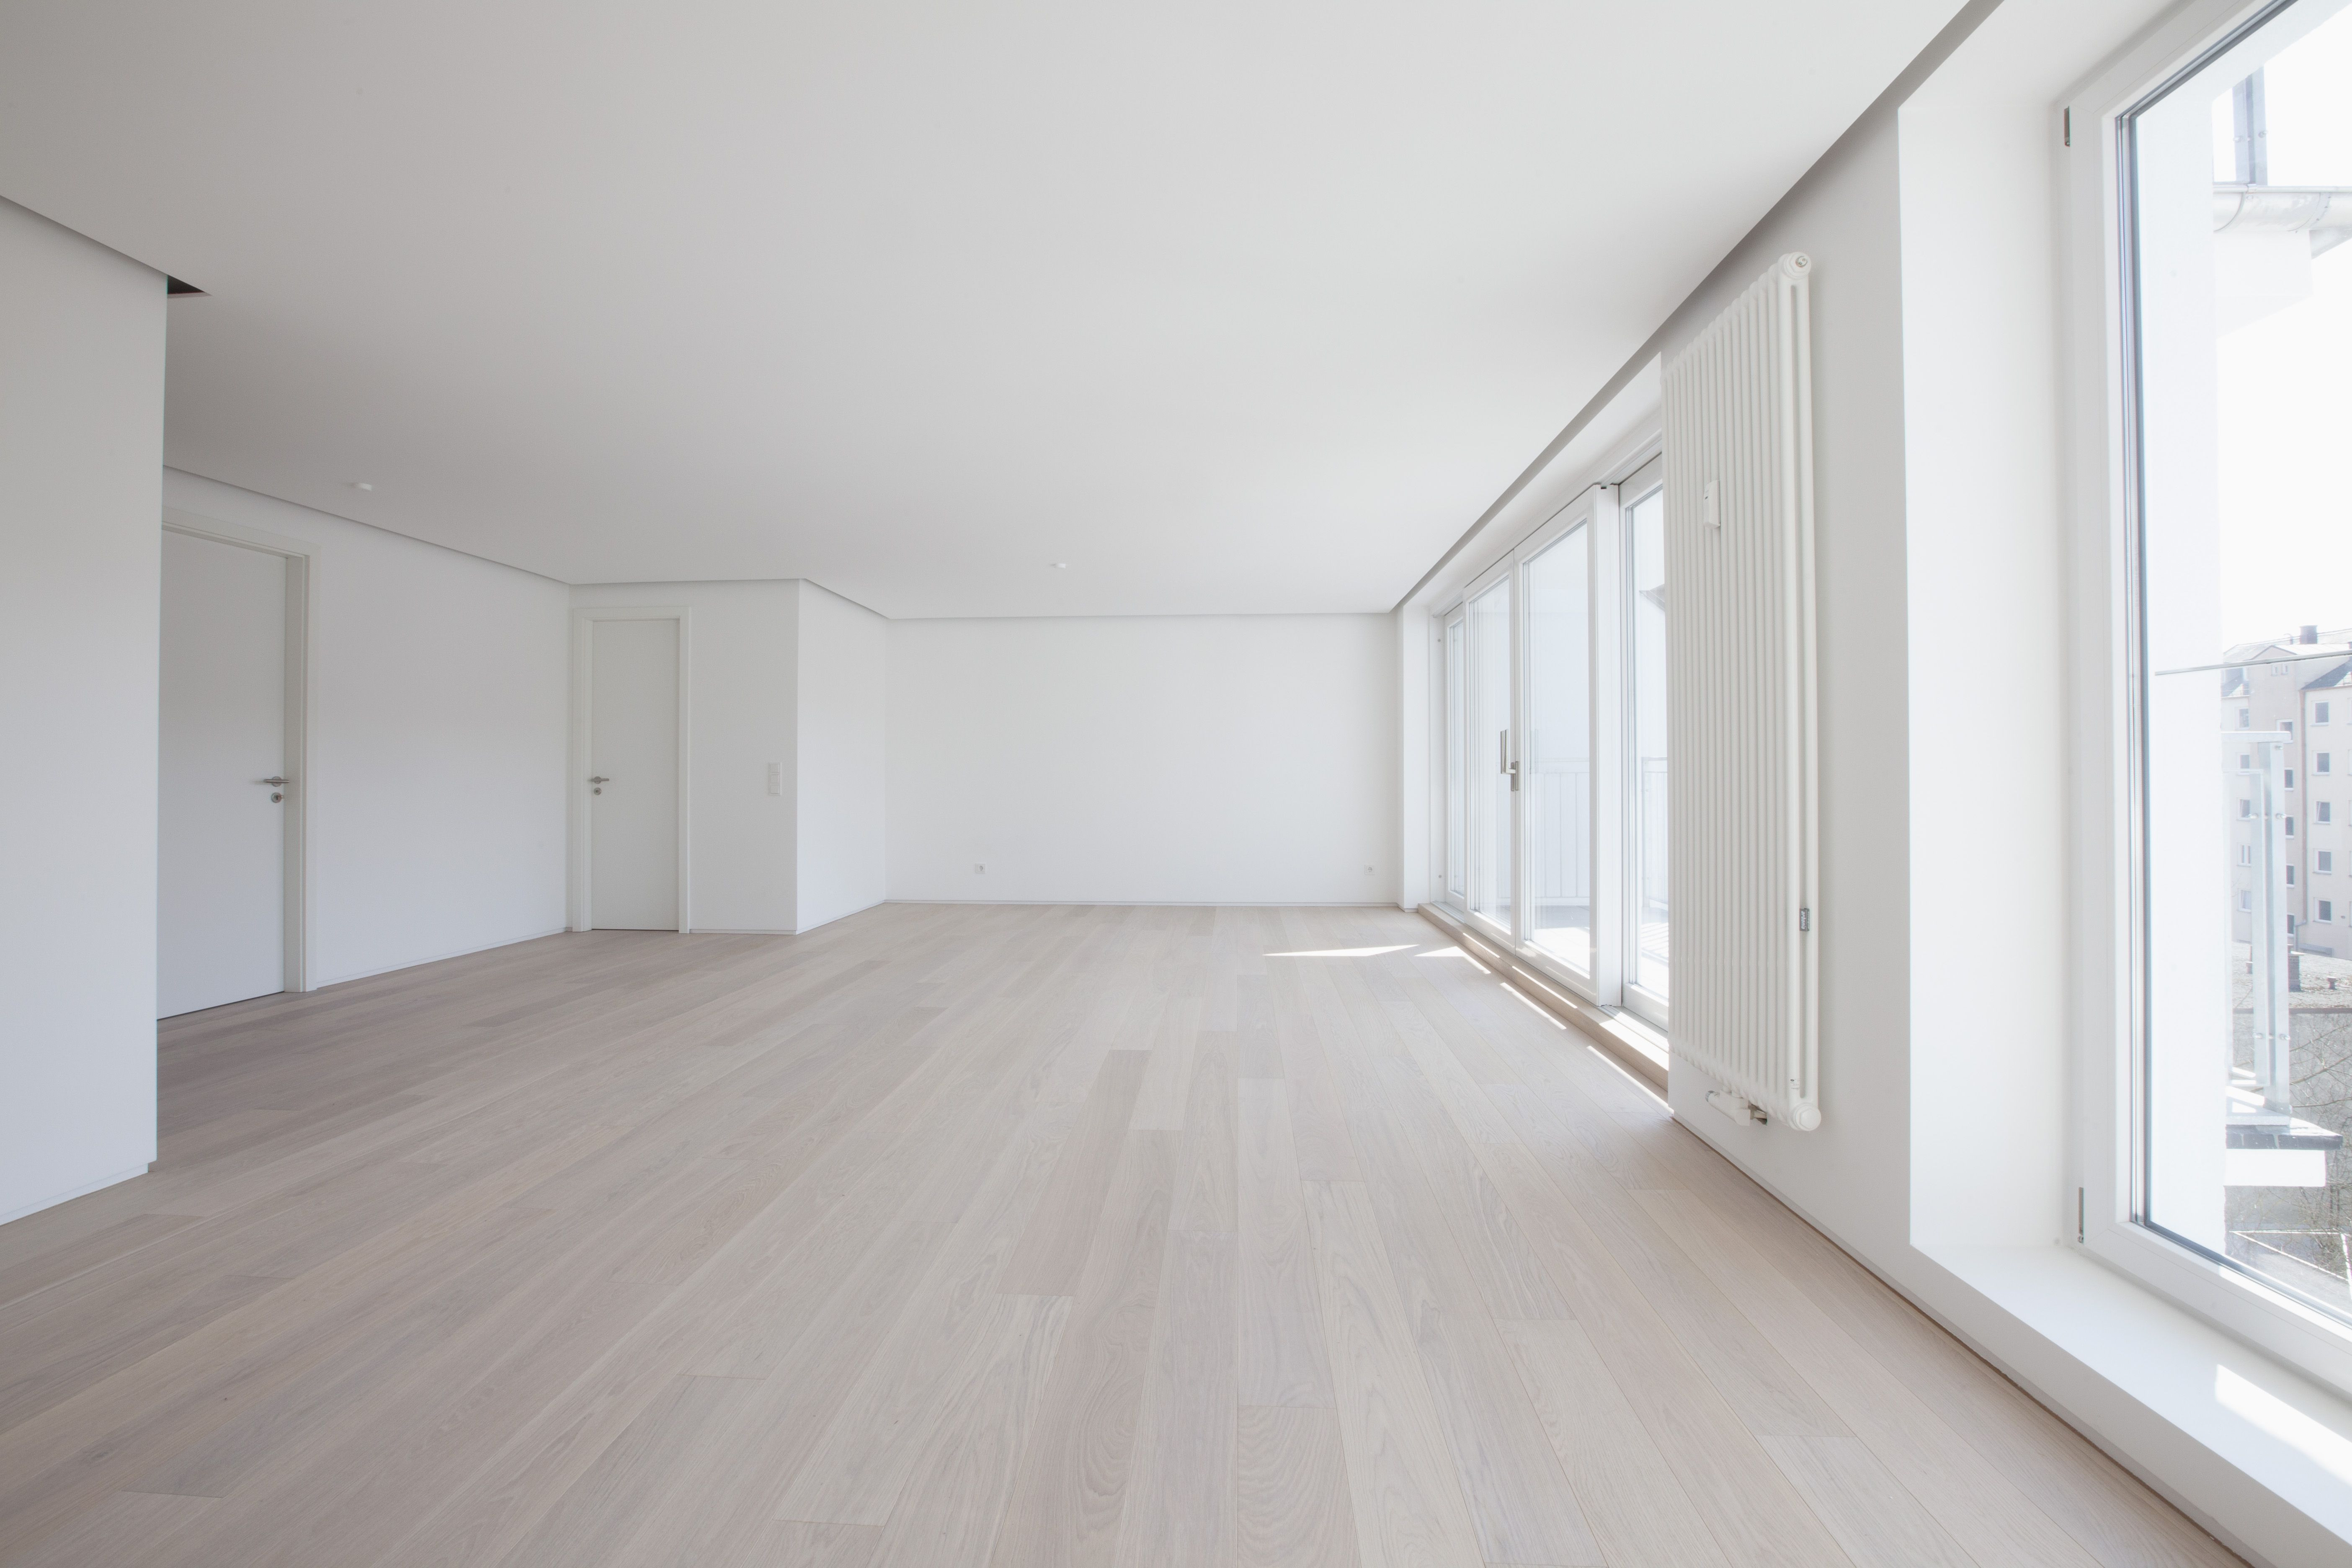 engineered hardwood flooring 3 8 vs 1 2 of basics of favorite hybrid engineered wood floors throughout empty living room in modern apartment 578189139 58866f903df78c2ccdecab05